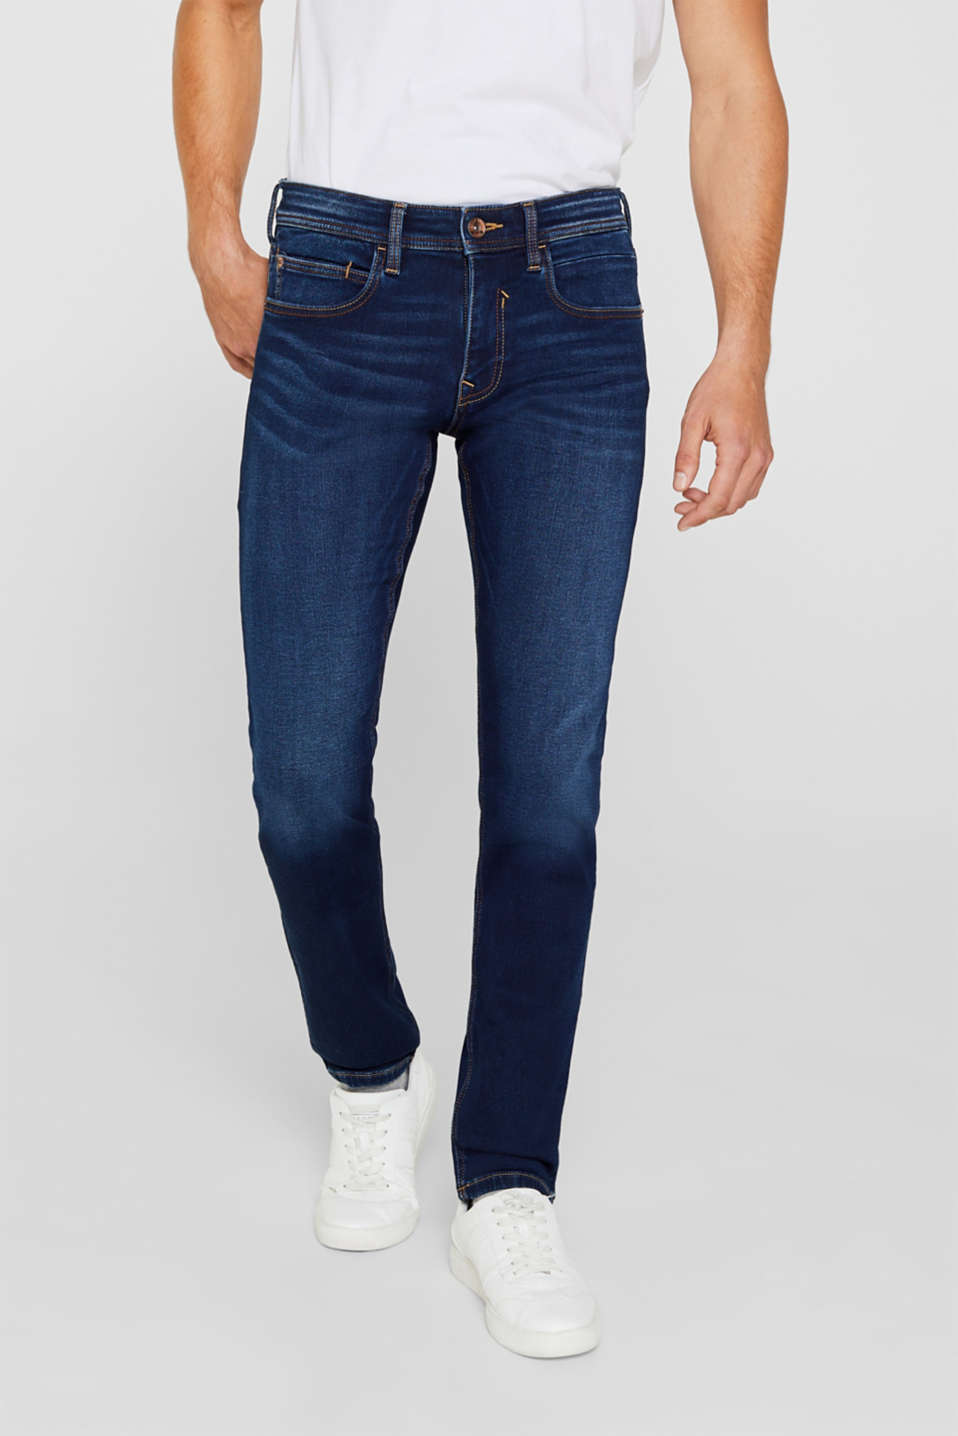 Esprit - Superstretch-Jeans in Jogger-Qualität